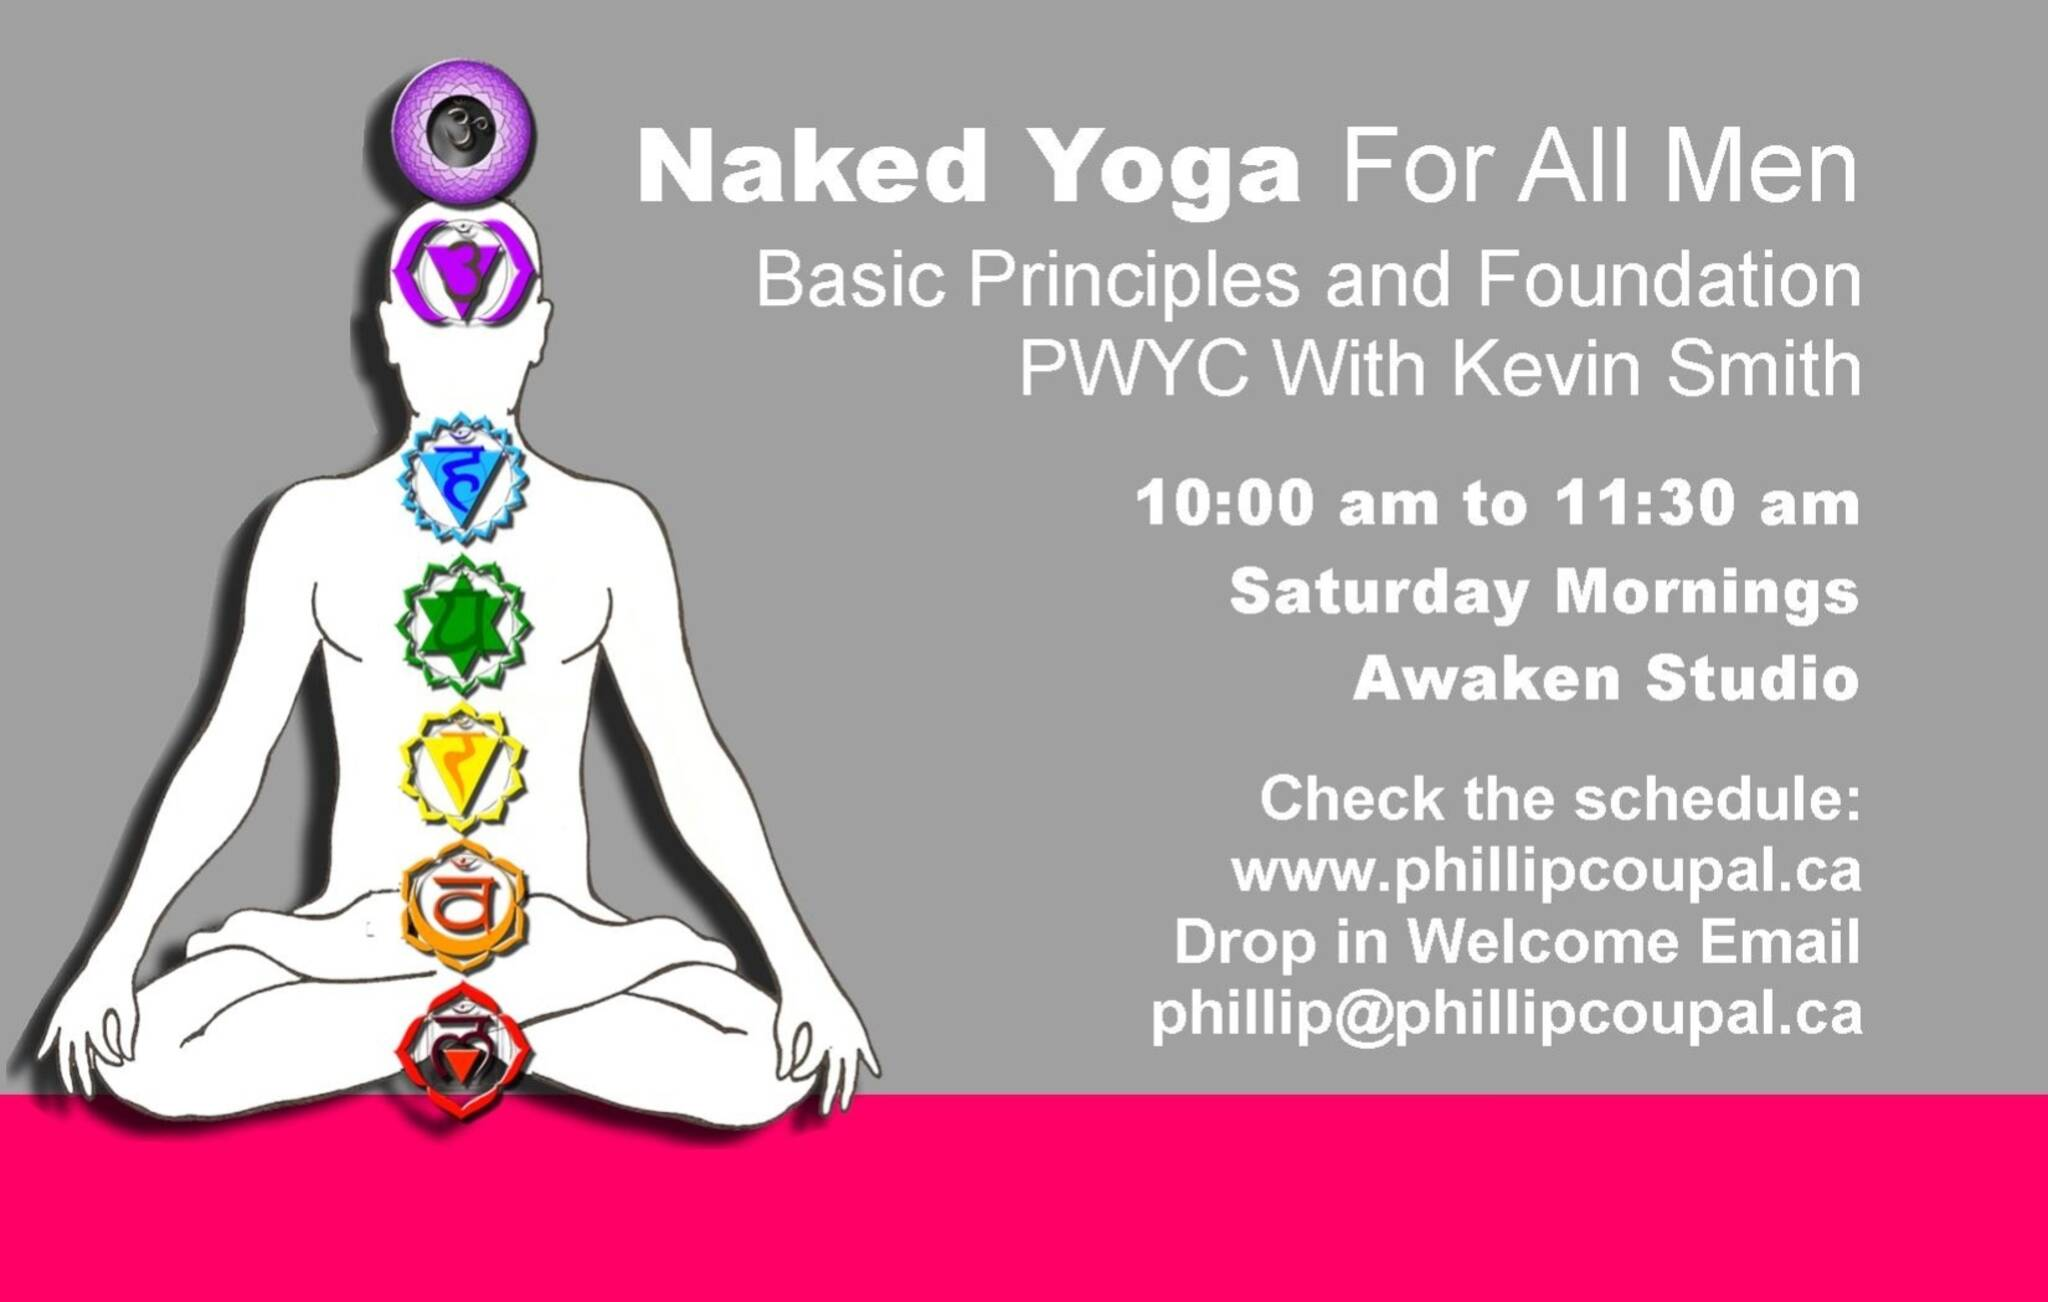 Naked Yoga For All Men Saturday Morning With Kevin Smith At The Awake Studio Toronto